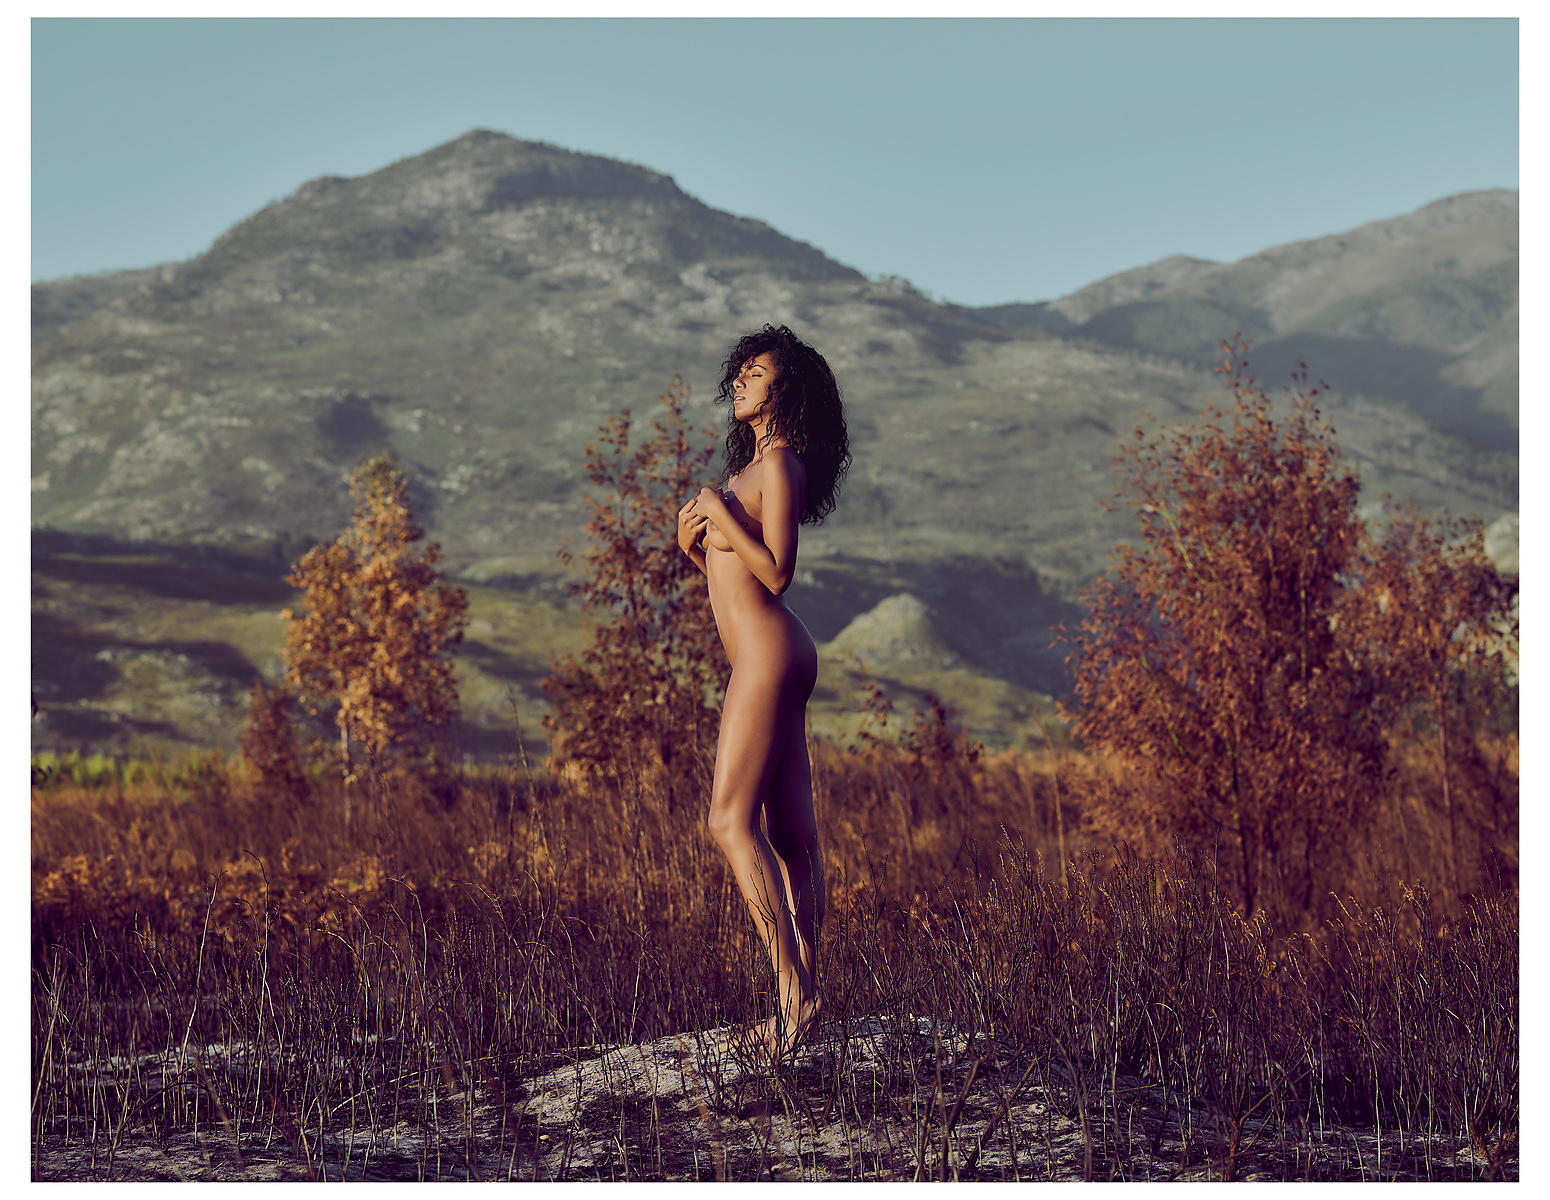 Juliana_nude in nature